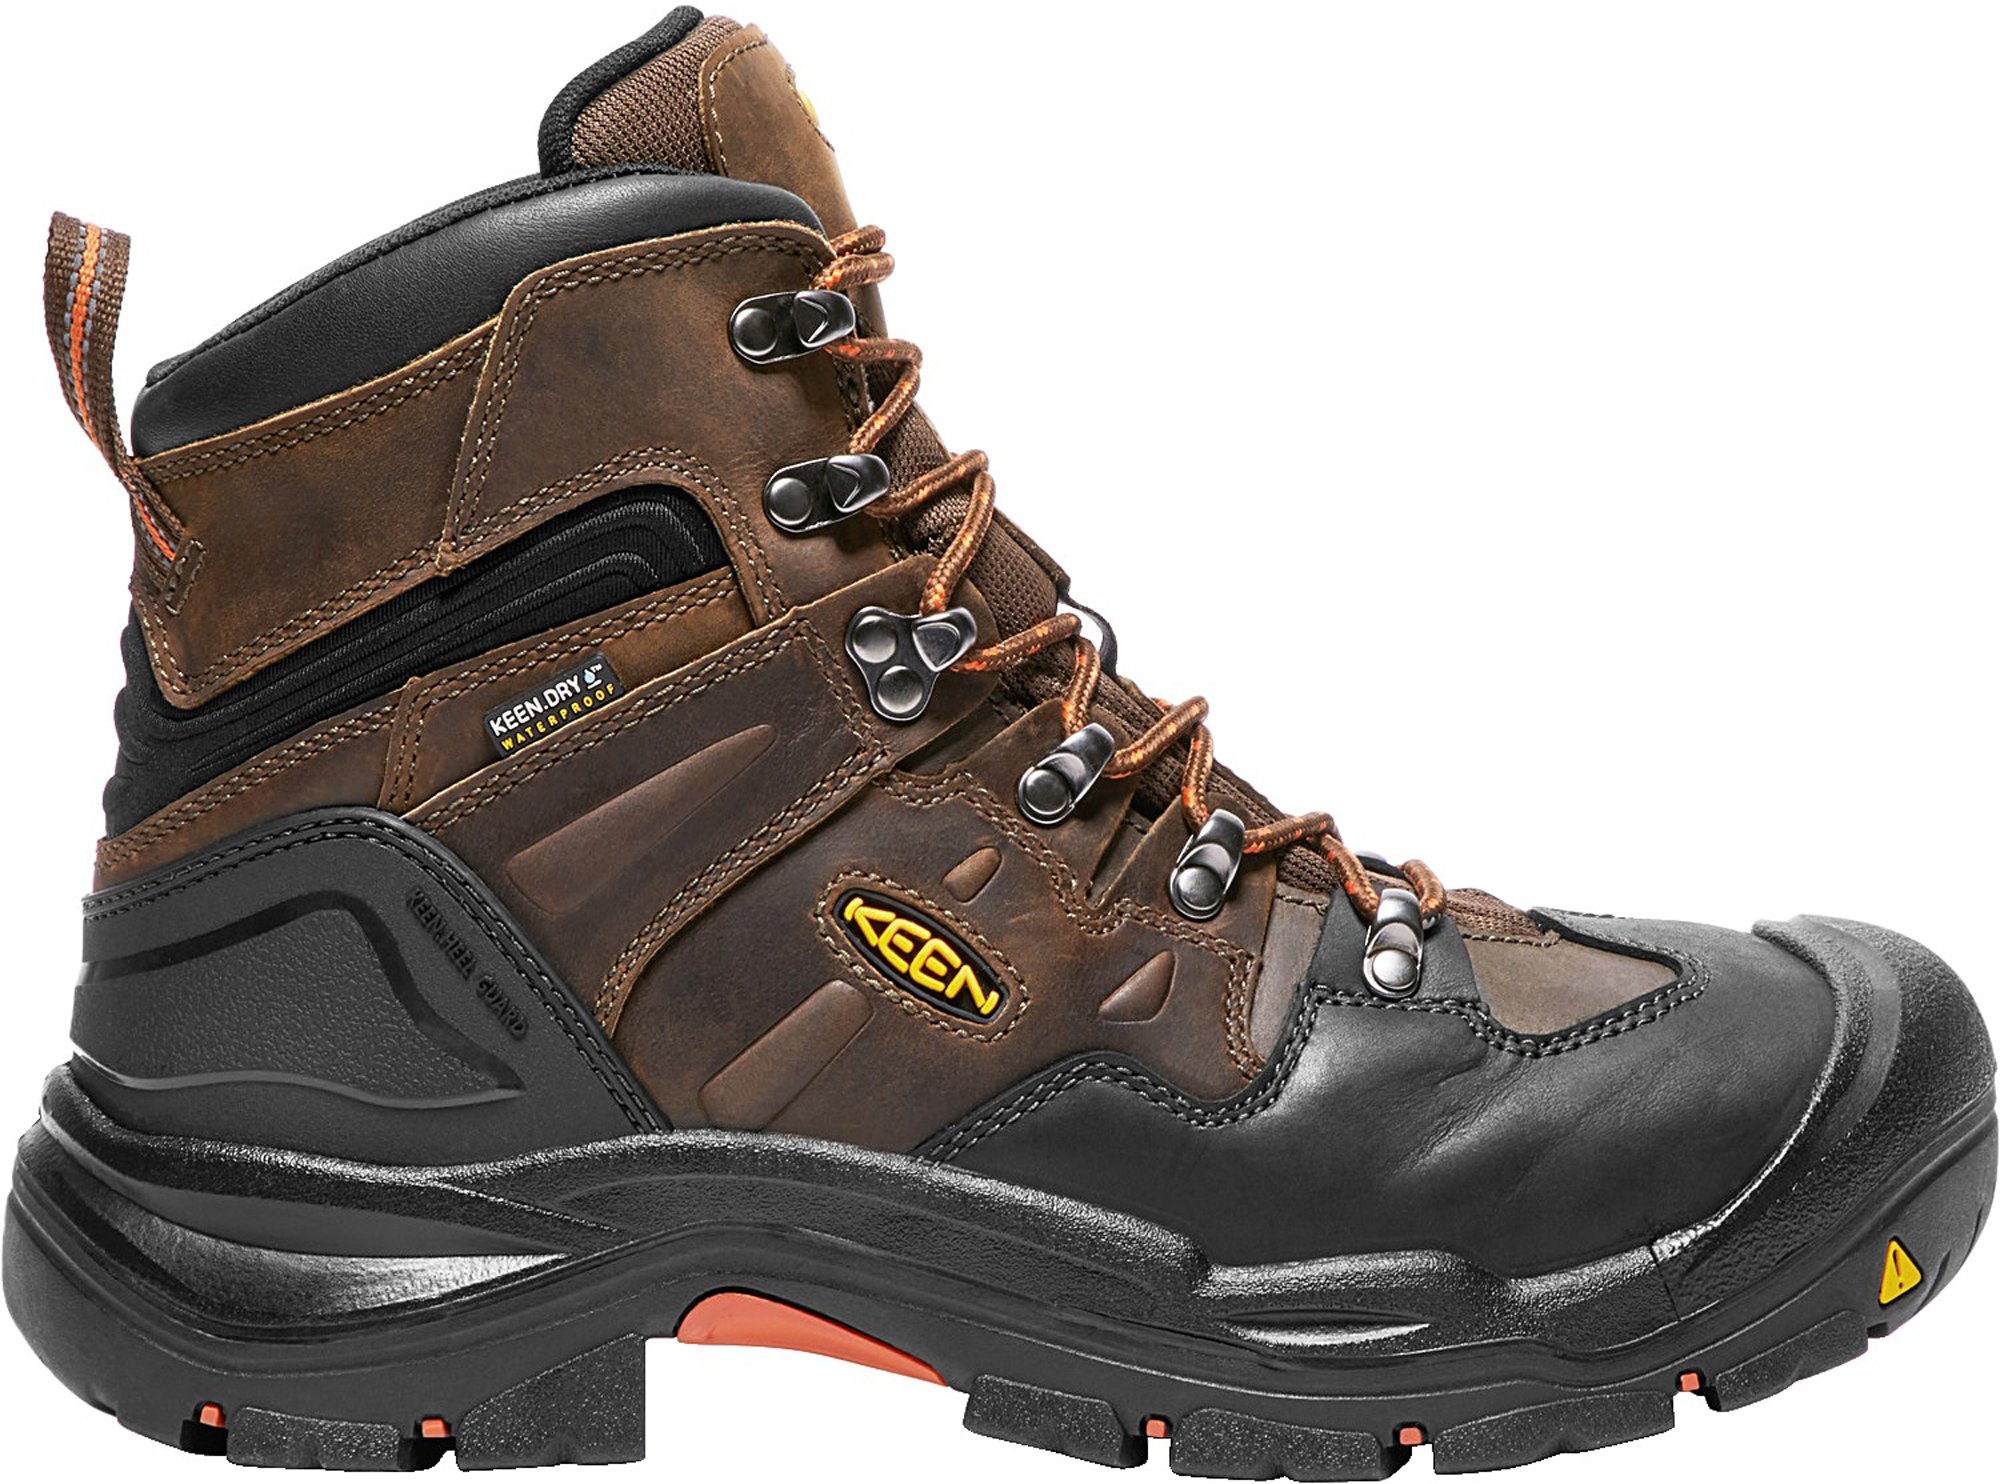 KEEN Utility Coburg 6'' WP (Steel Toe), Men's Work Boot, Cascade Brown/Brindle, 15 D by KEEN Utility